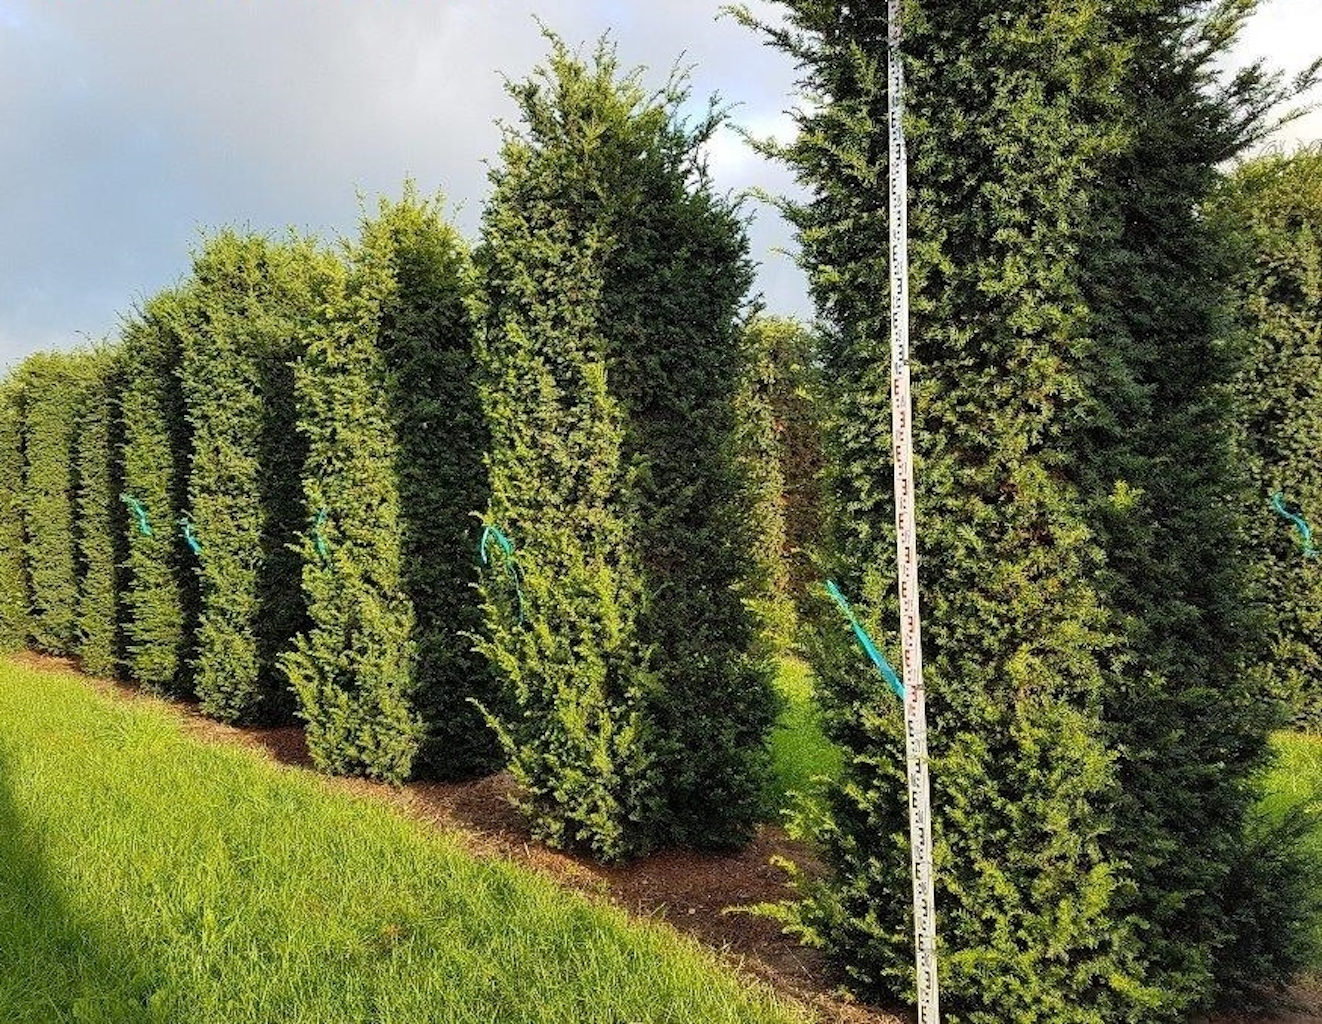 Taxus baccata instant hedge plants 300-350cm tall x 80-100cm wide